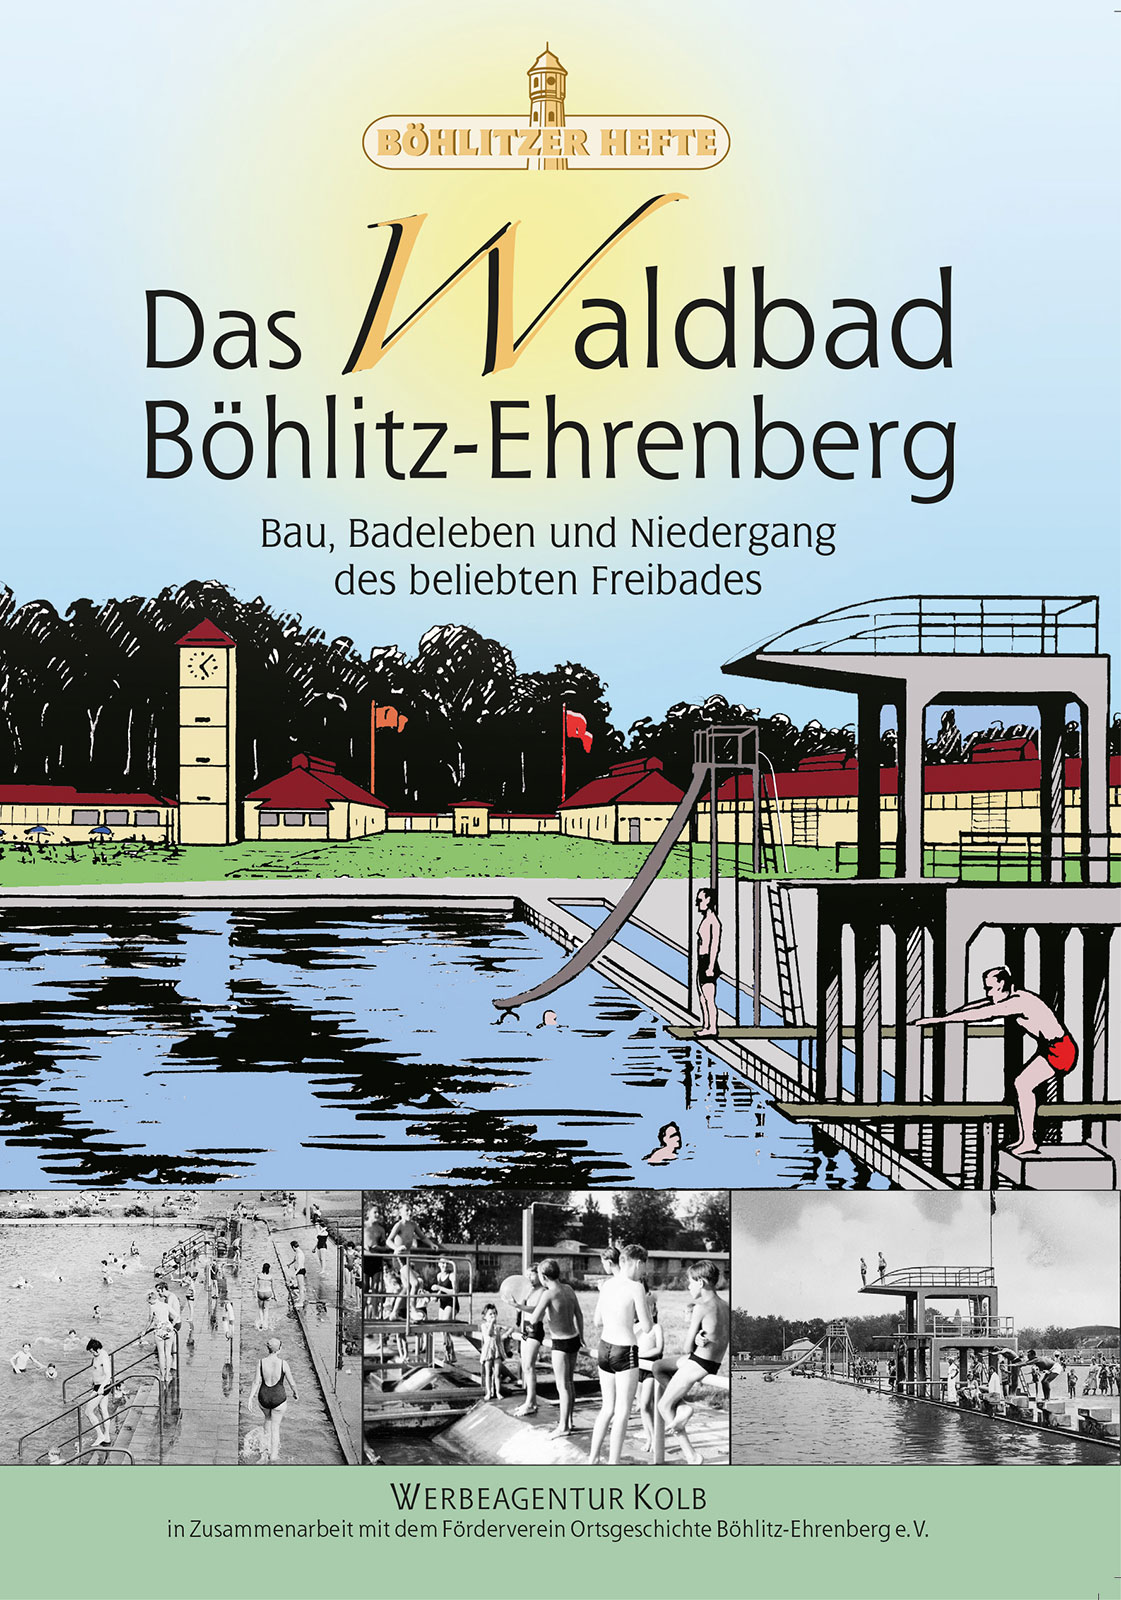 03-waldbad-be-web